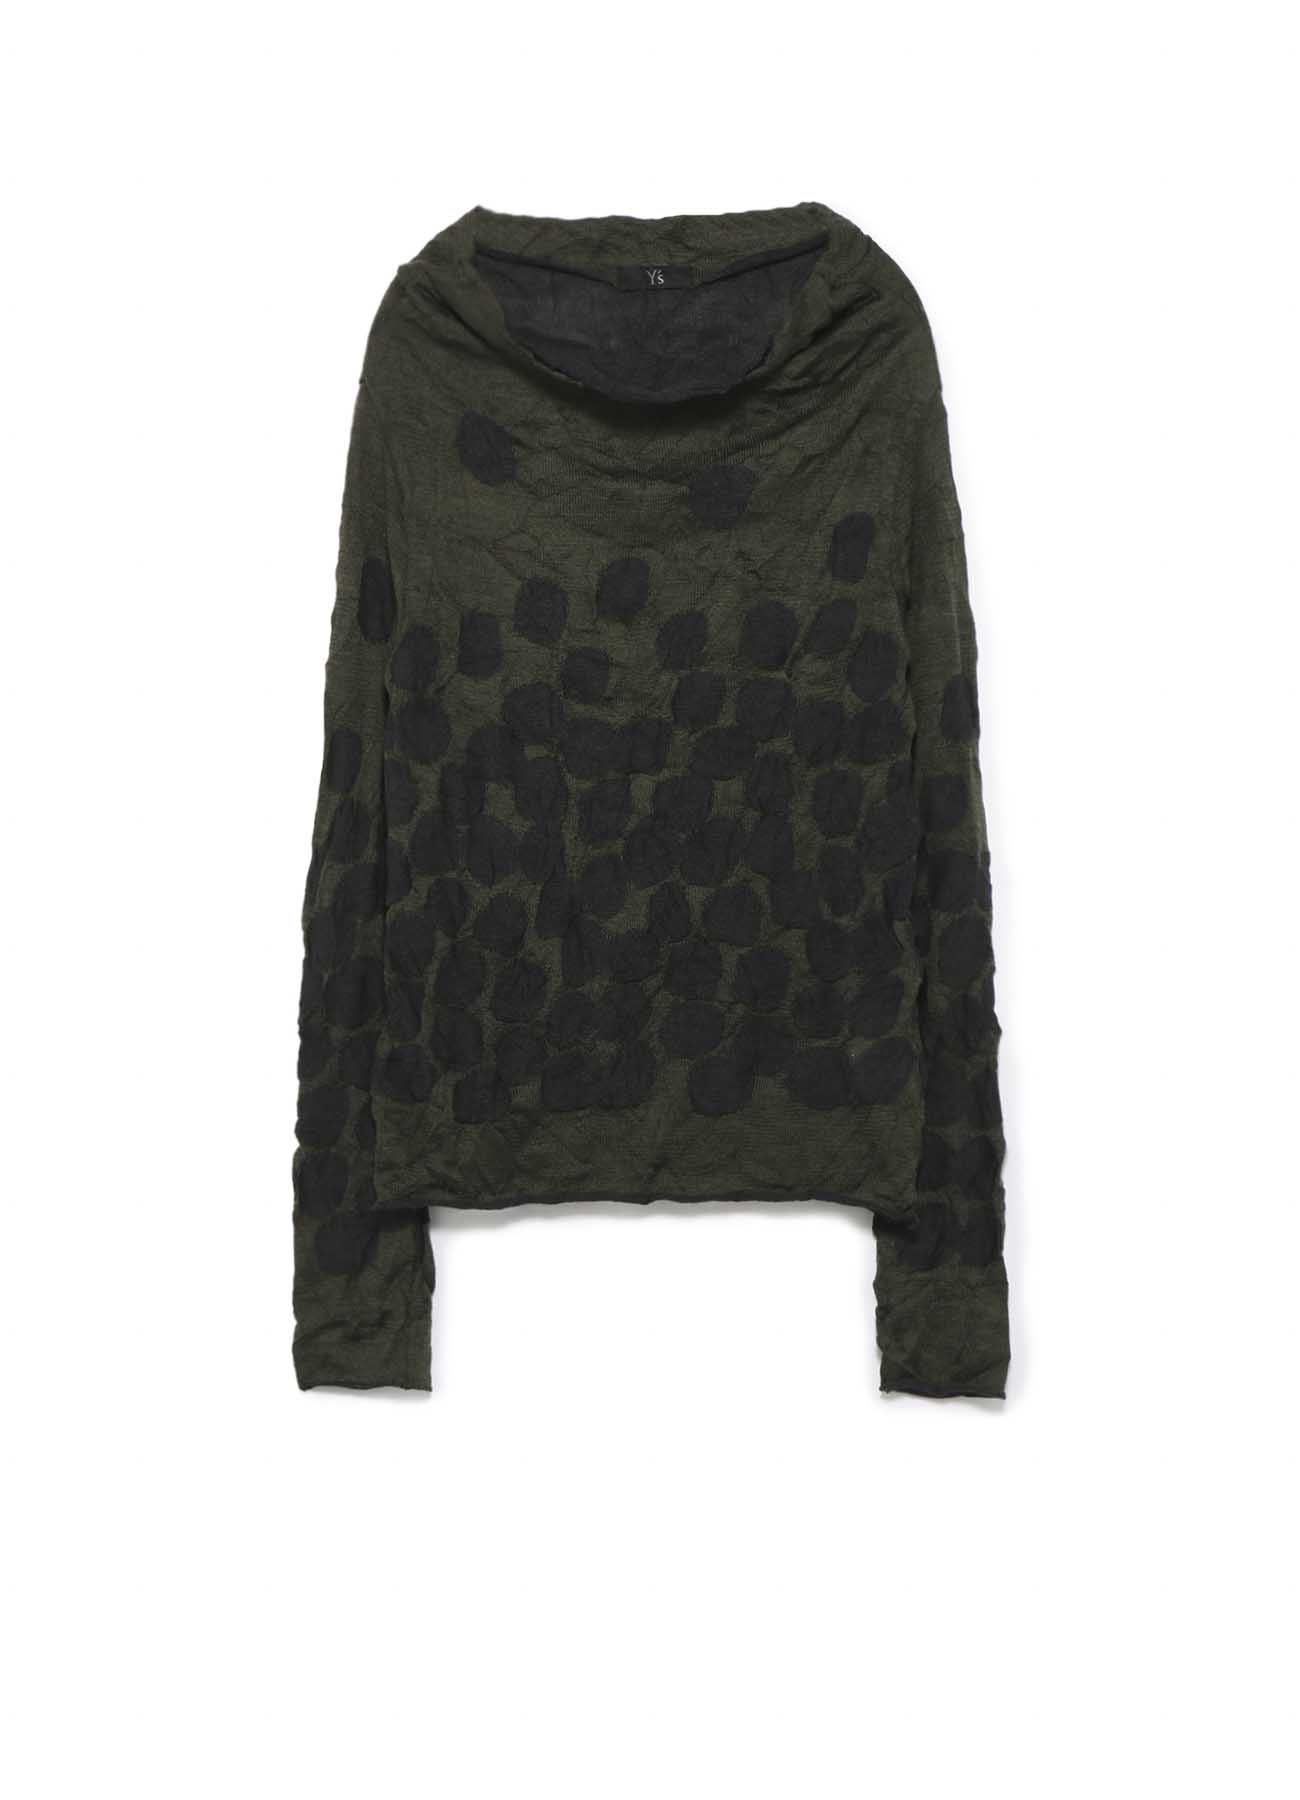 LINKS DOT WRINKLE OFF NECK LONG SLEEVE KNIT PULLOVER